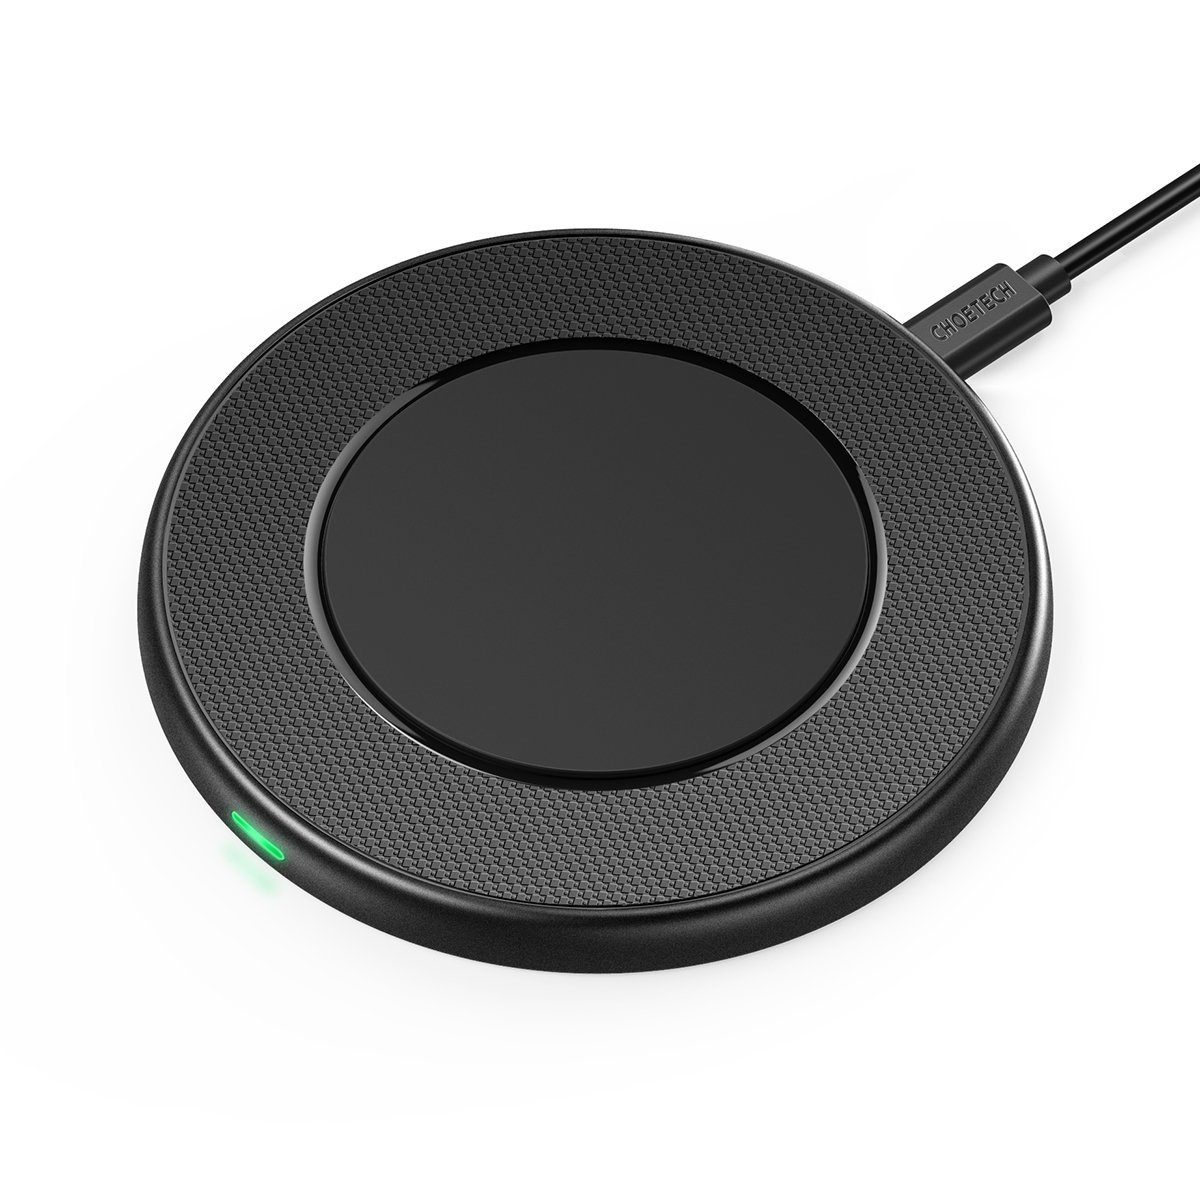 Wireless Charger, CHOETECH 7.5W Wireless Charging Pad Compatible with iPhone X/XS/XS Max/XR/8/8 Plus, 10W Fast Wireless Charger Compatible with Samsung Galaxy S9/S9+/S8//Note 9/Note 8/S7/S7 Edge/More